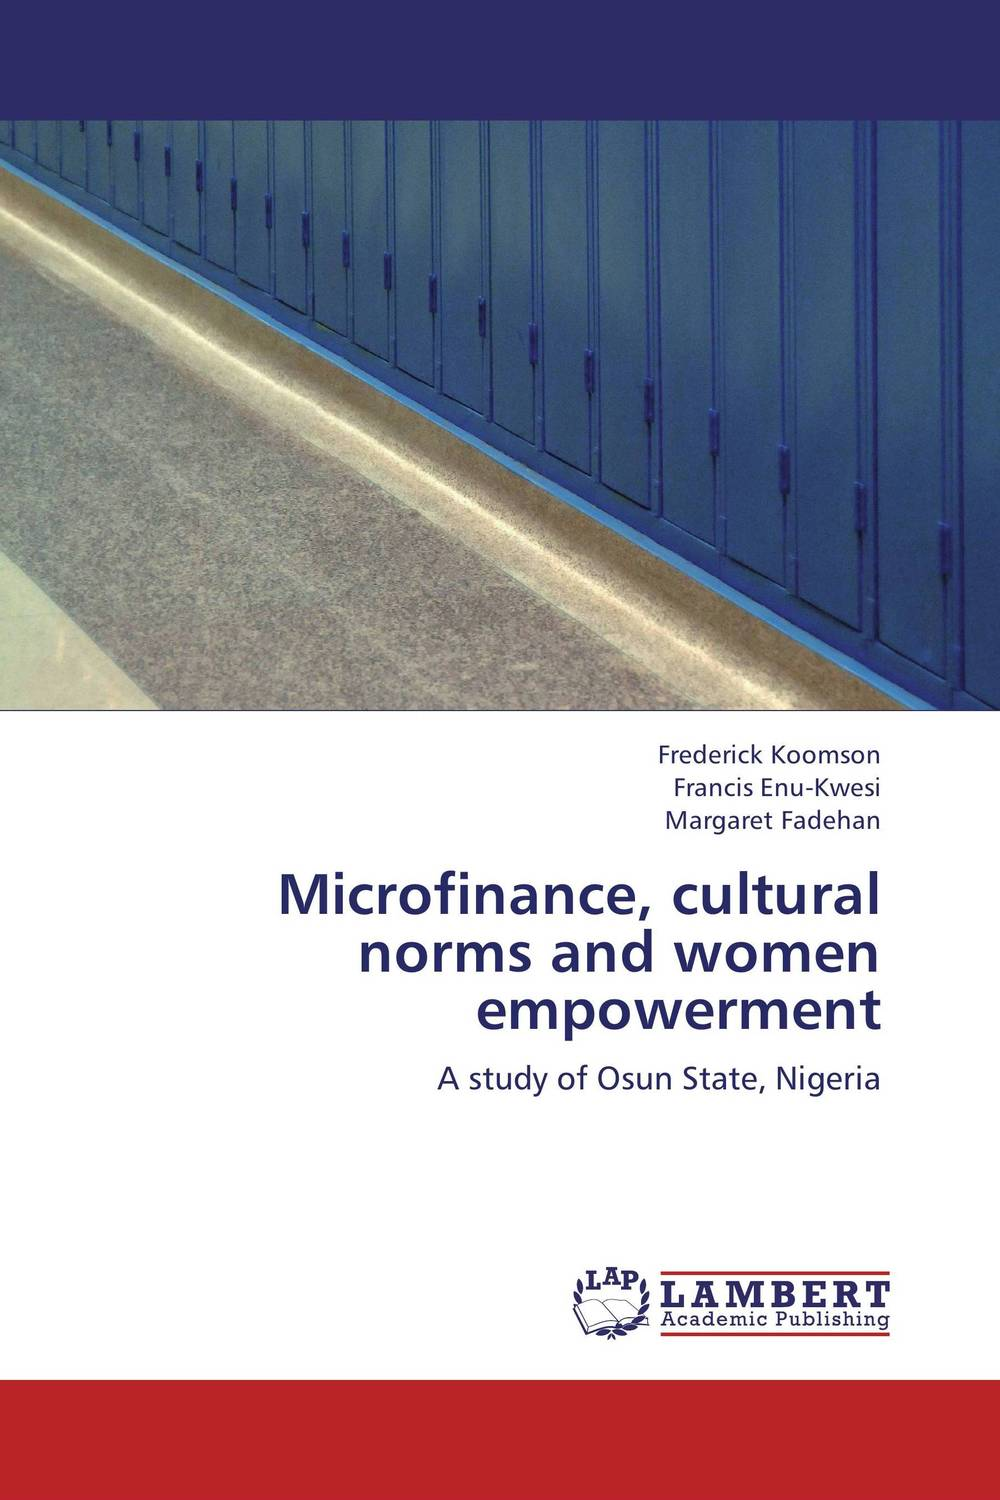 Microfinance, cultural norms and women empowerment found in brooklyn